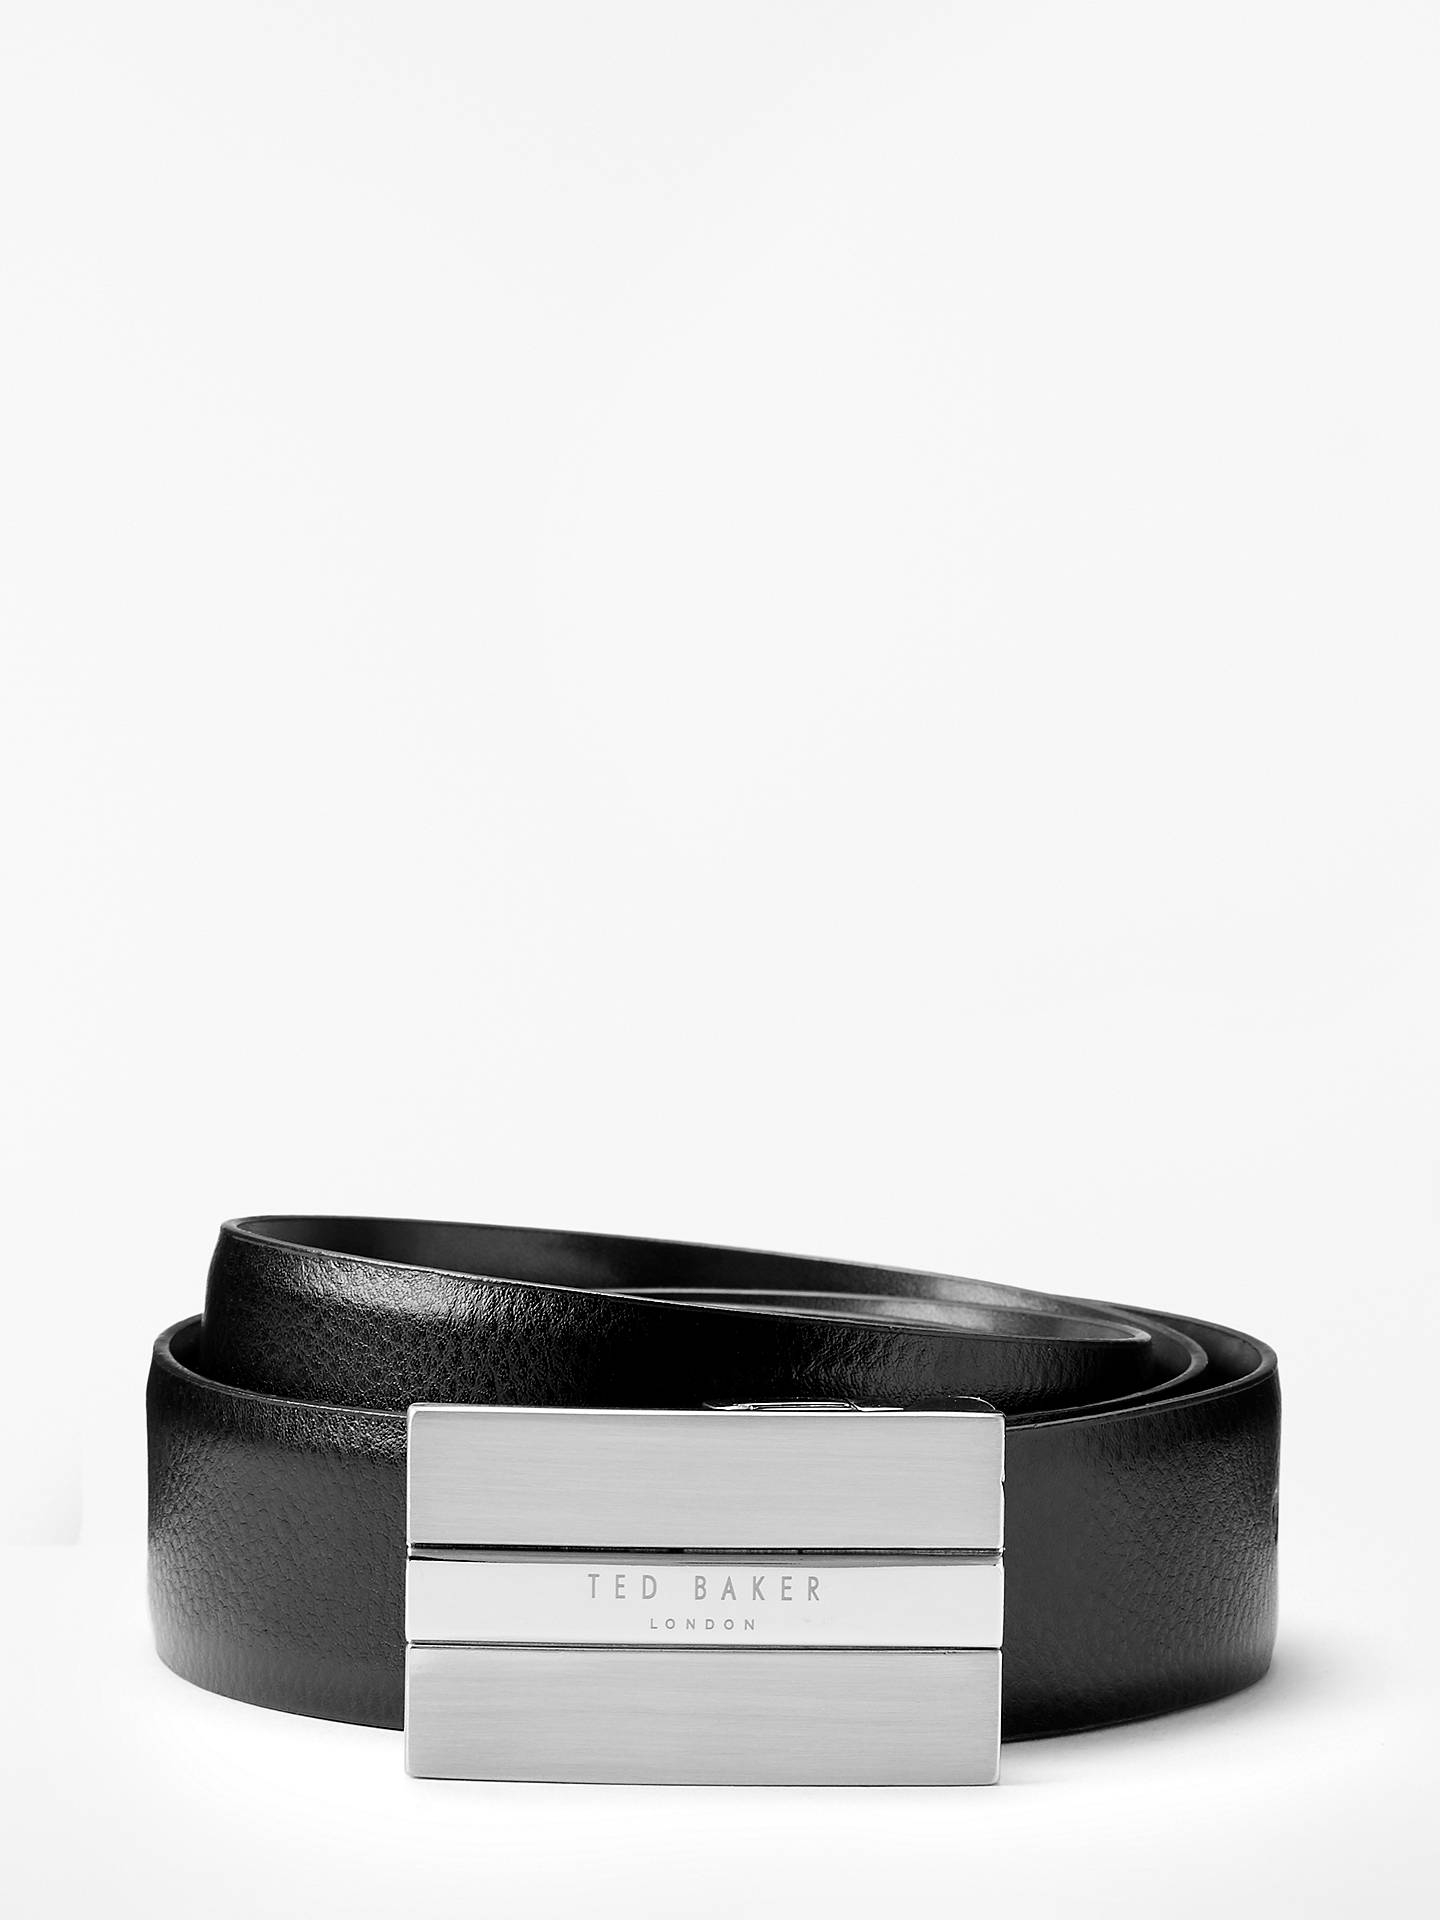 BuyTed Baker Two Buckle Belt Gift Set, One Size, Black Online at johnlewis.com